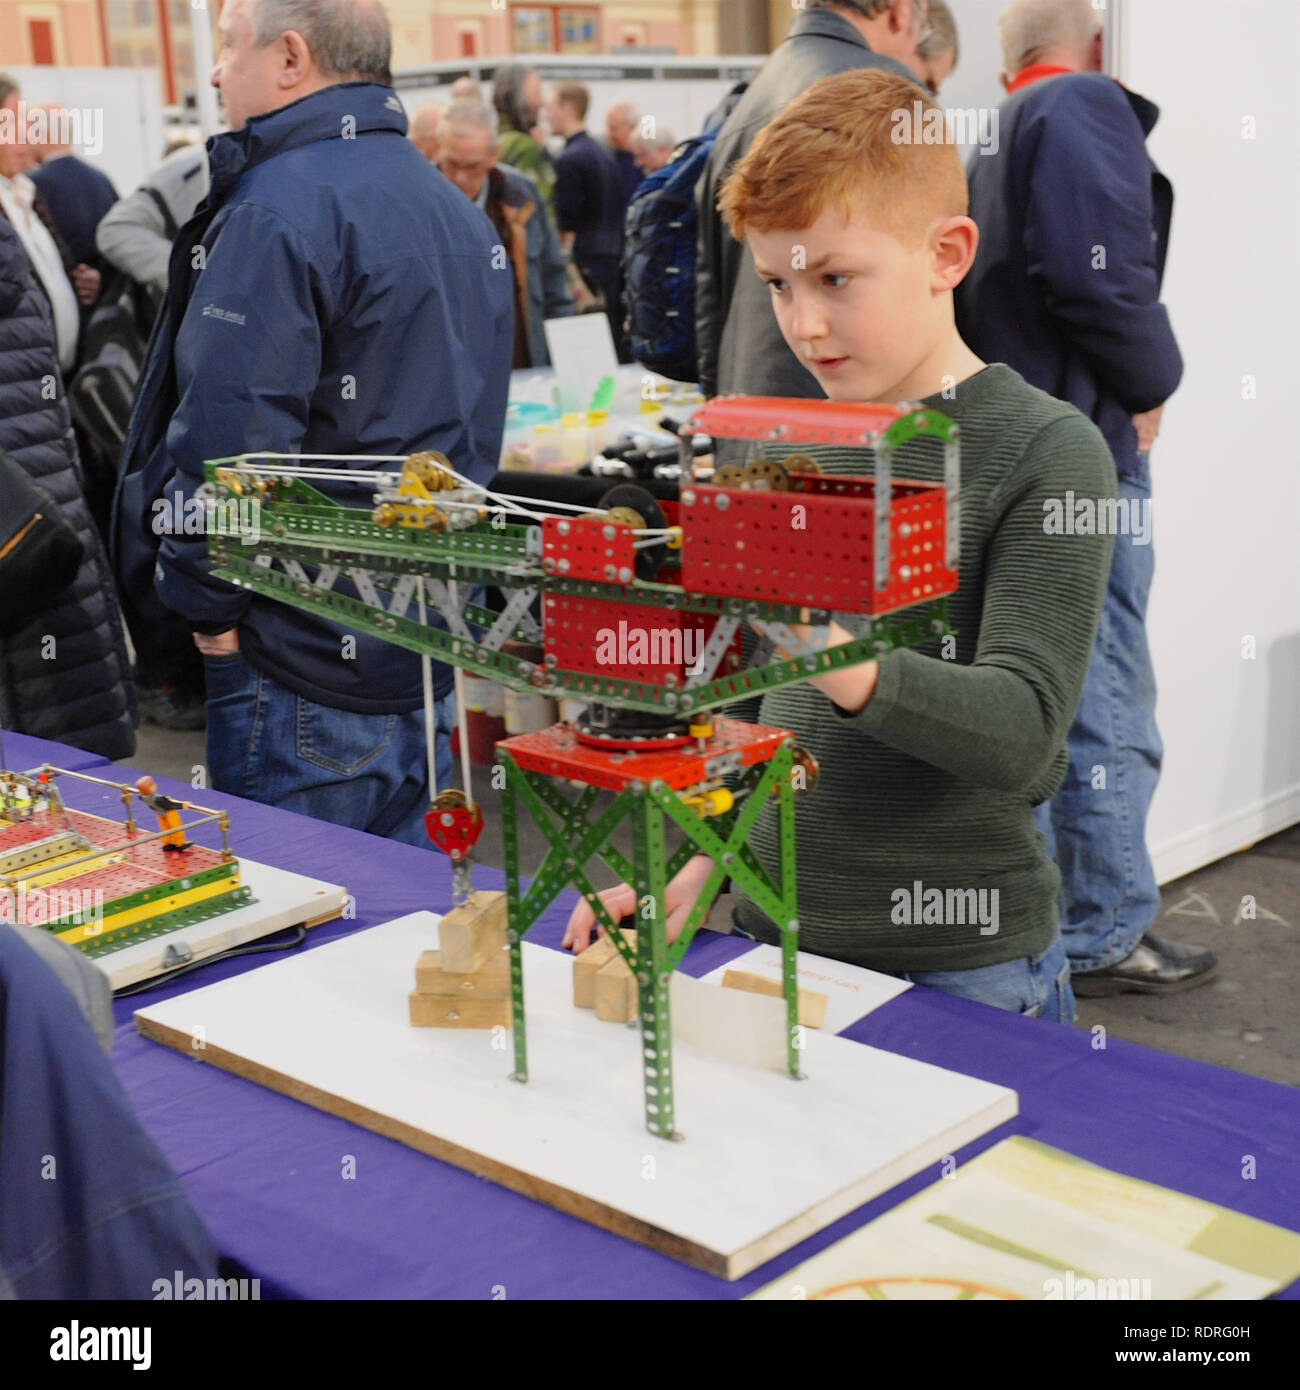 Alexandra Palace, London, UK. 18th Jan 2019. A boy playing with a Meccano crane at the London Model Engineering Exhibition, Alexandra Palace, London.  The London Model Engineering Exhibition is now in its 23rd year, and attracts around 14,000 visitors.   Credit: Michael Preston/Alamy Live News Stock Photo